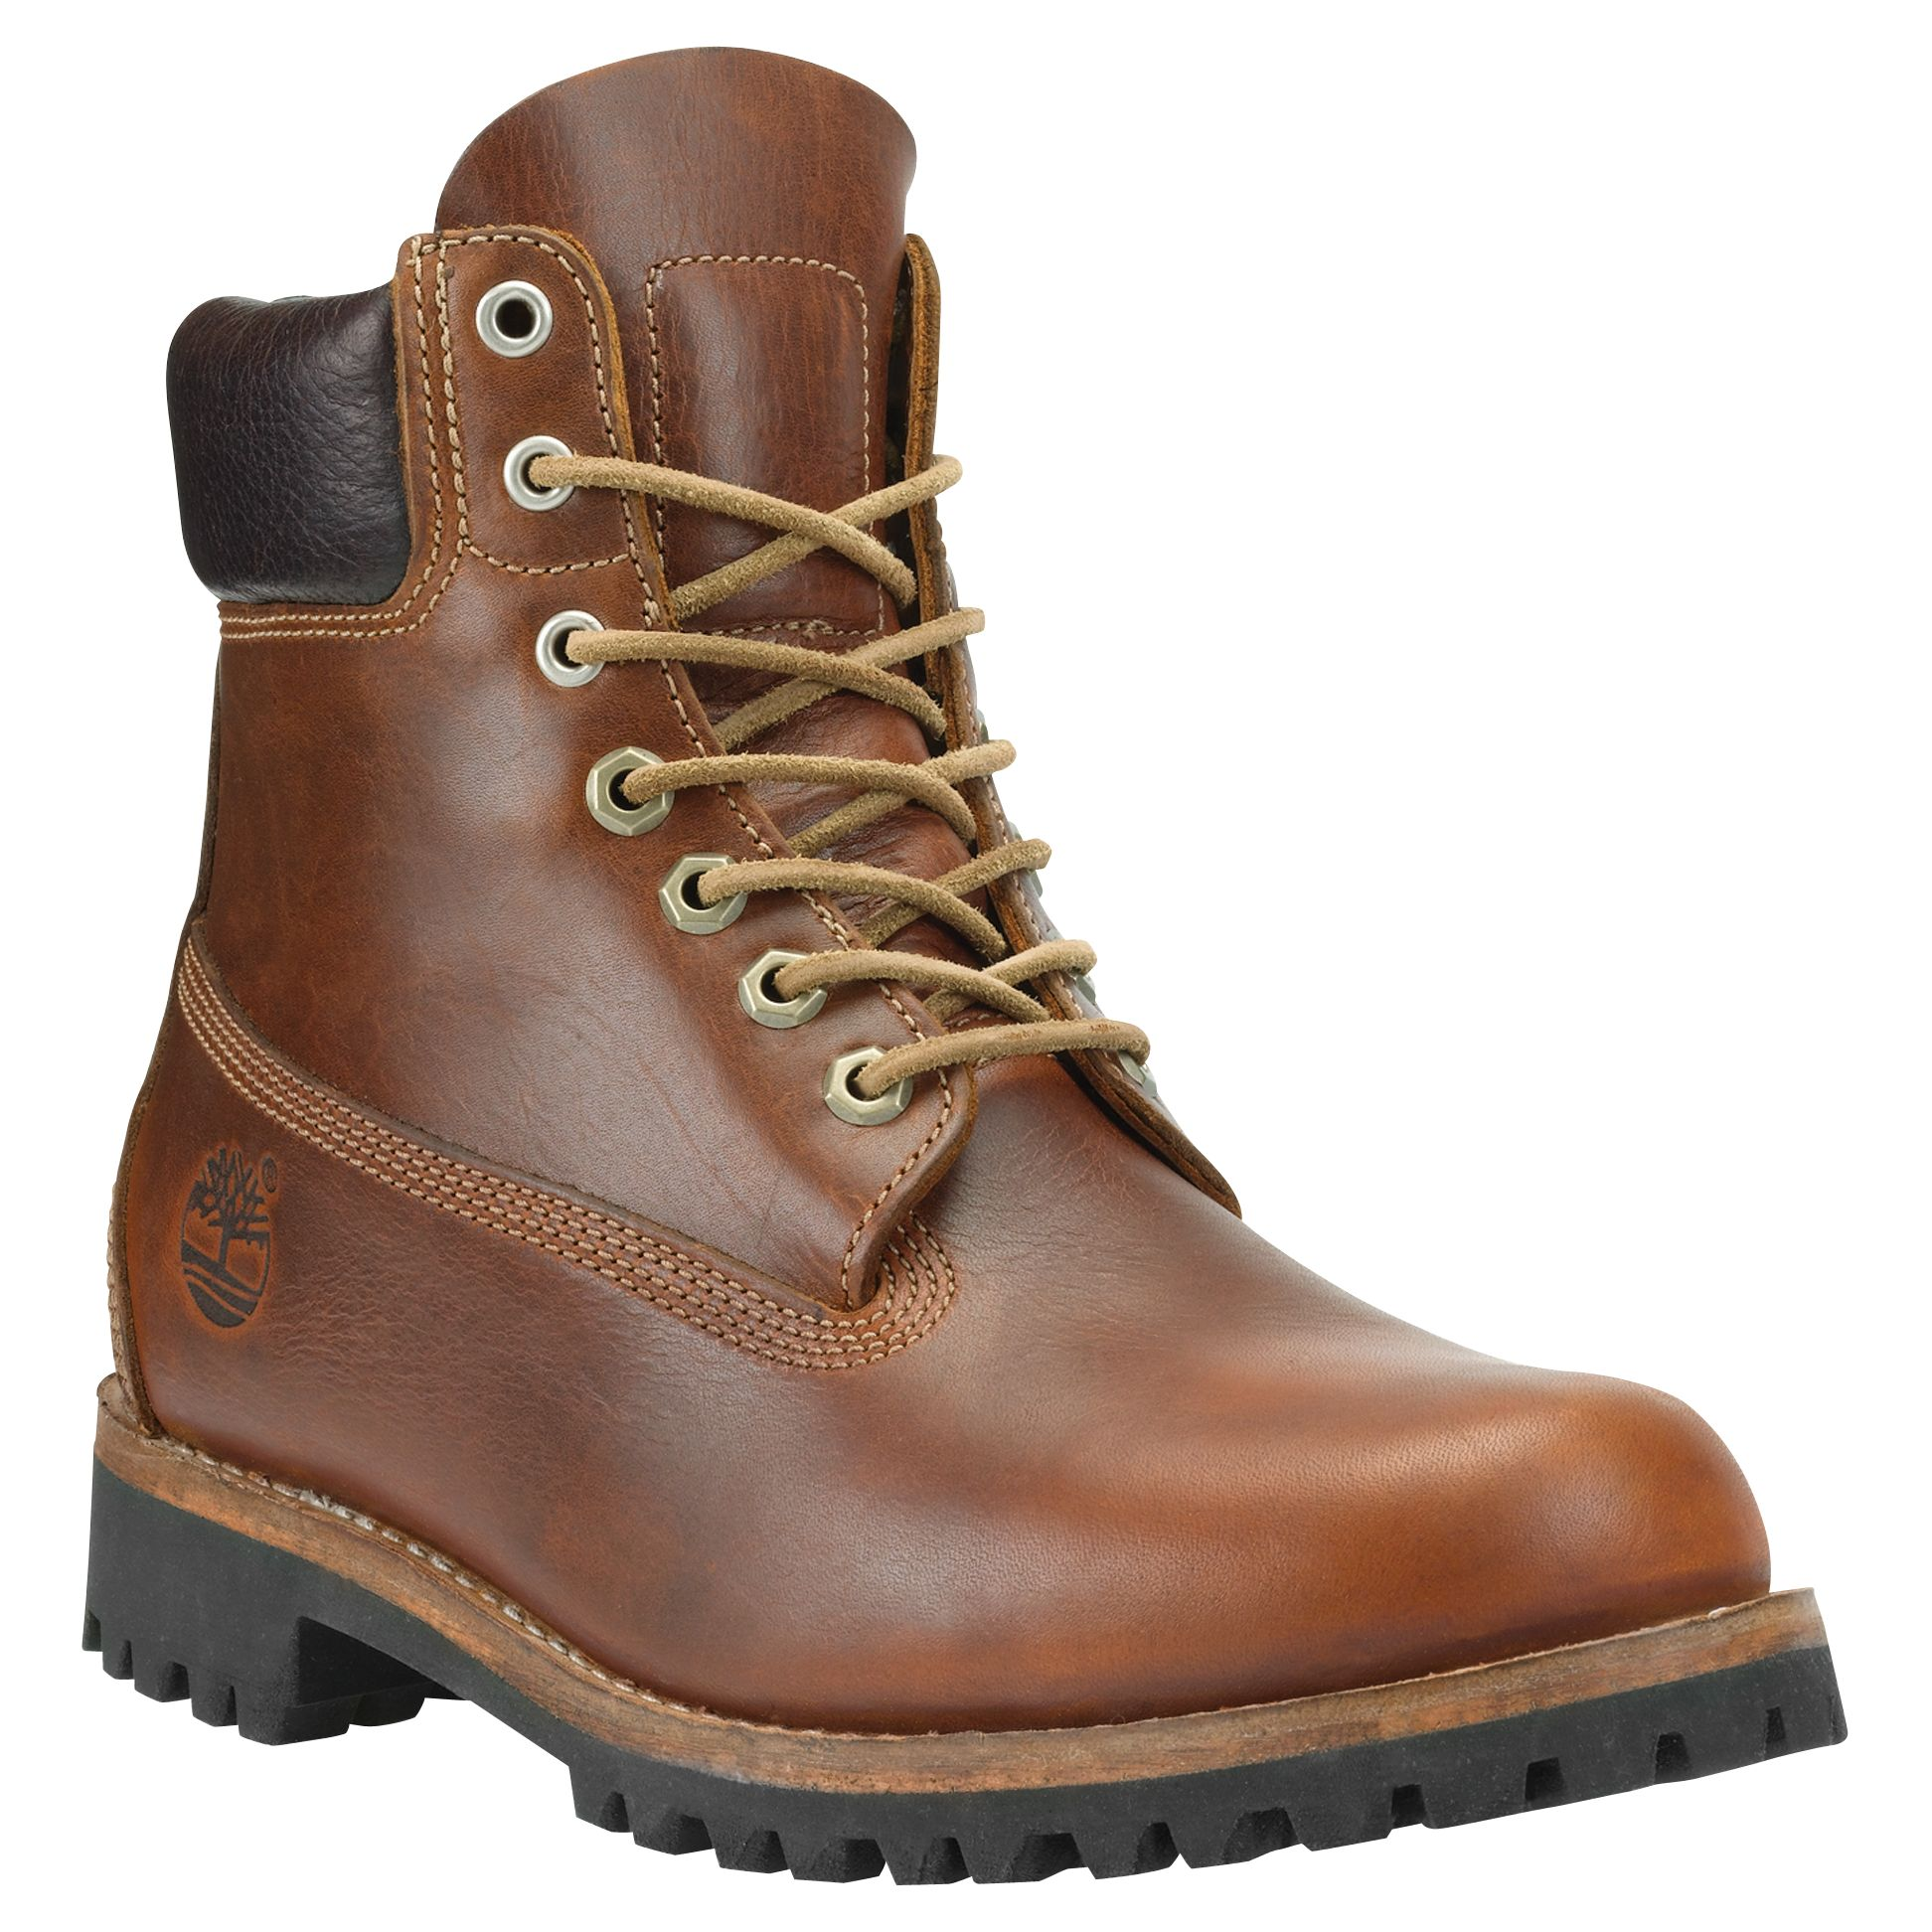 adbbdfa6833 Timberland Earthkeepers Heritage Boots, Glazed Ginger at John Lewis ...